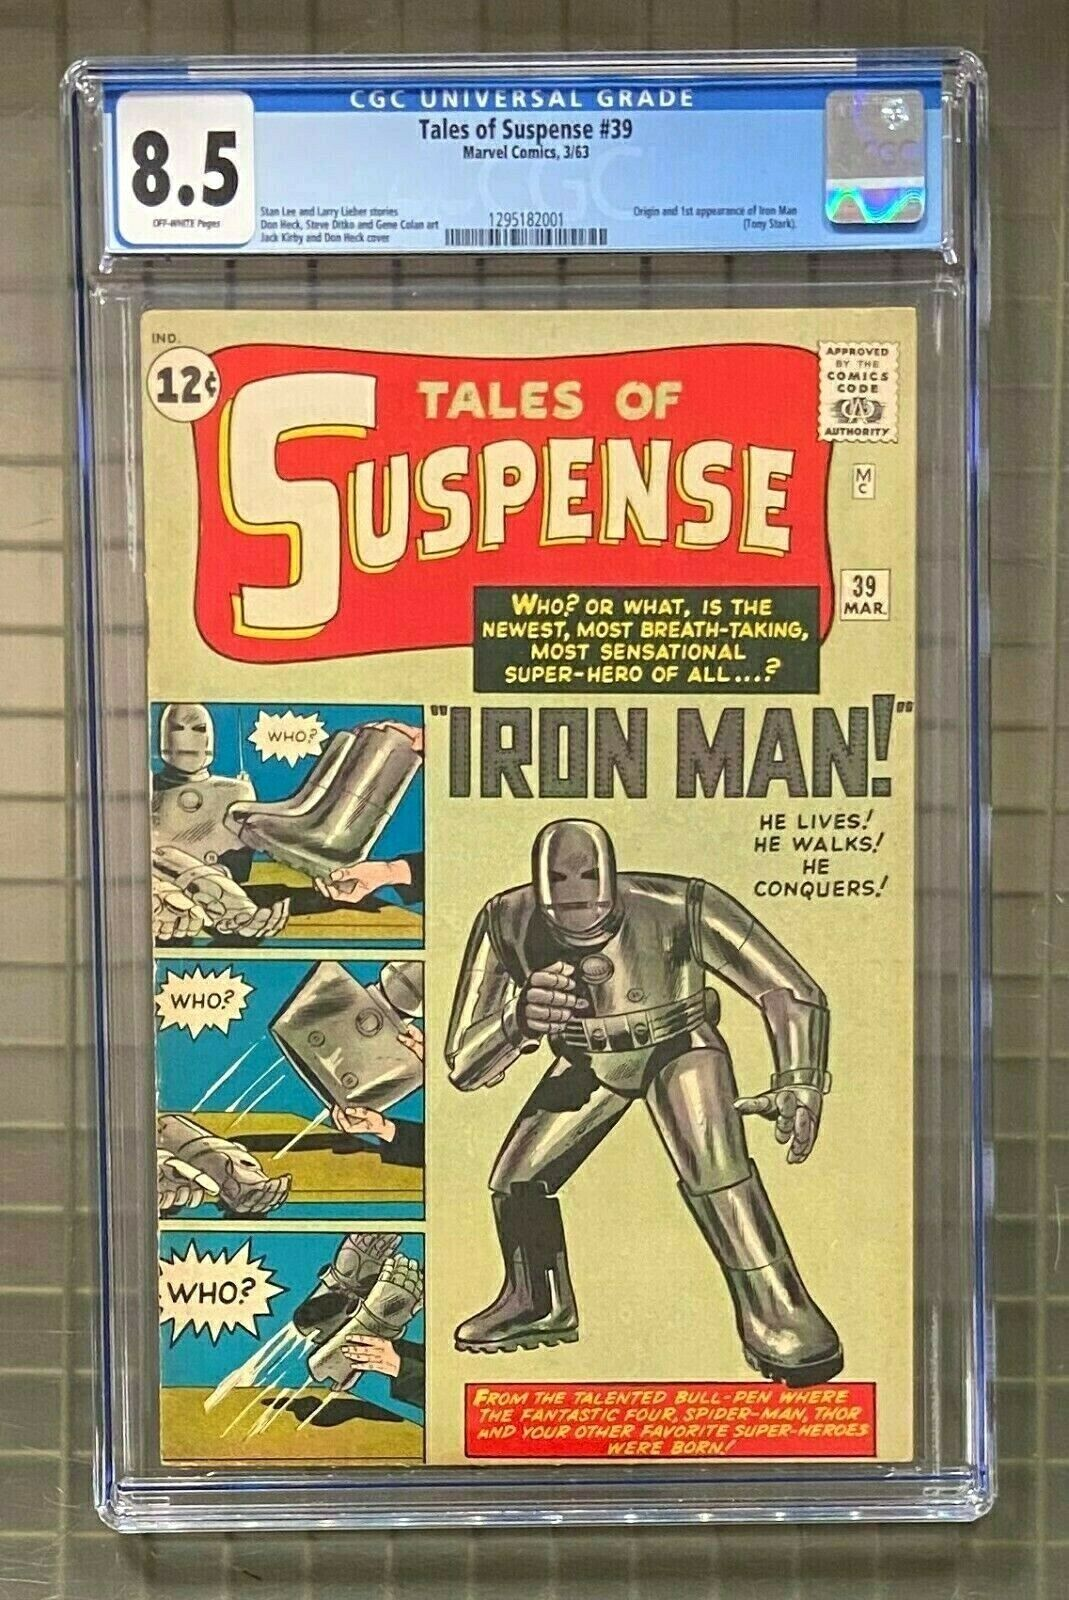 TALES OF SUSPENSE #39 Marvel Comics 1963 IRON MAN 1st Appearance CGC 8.5